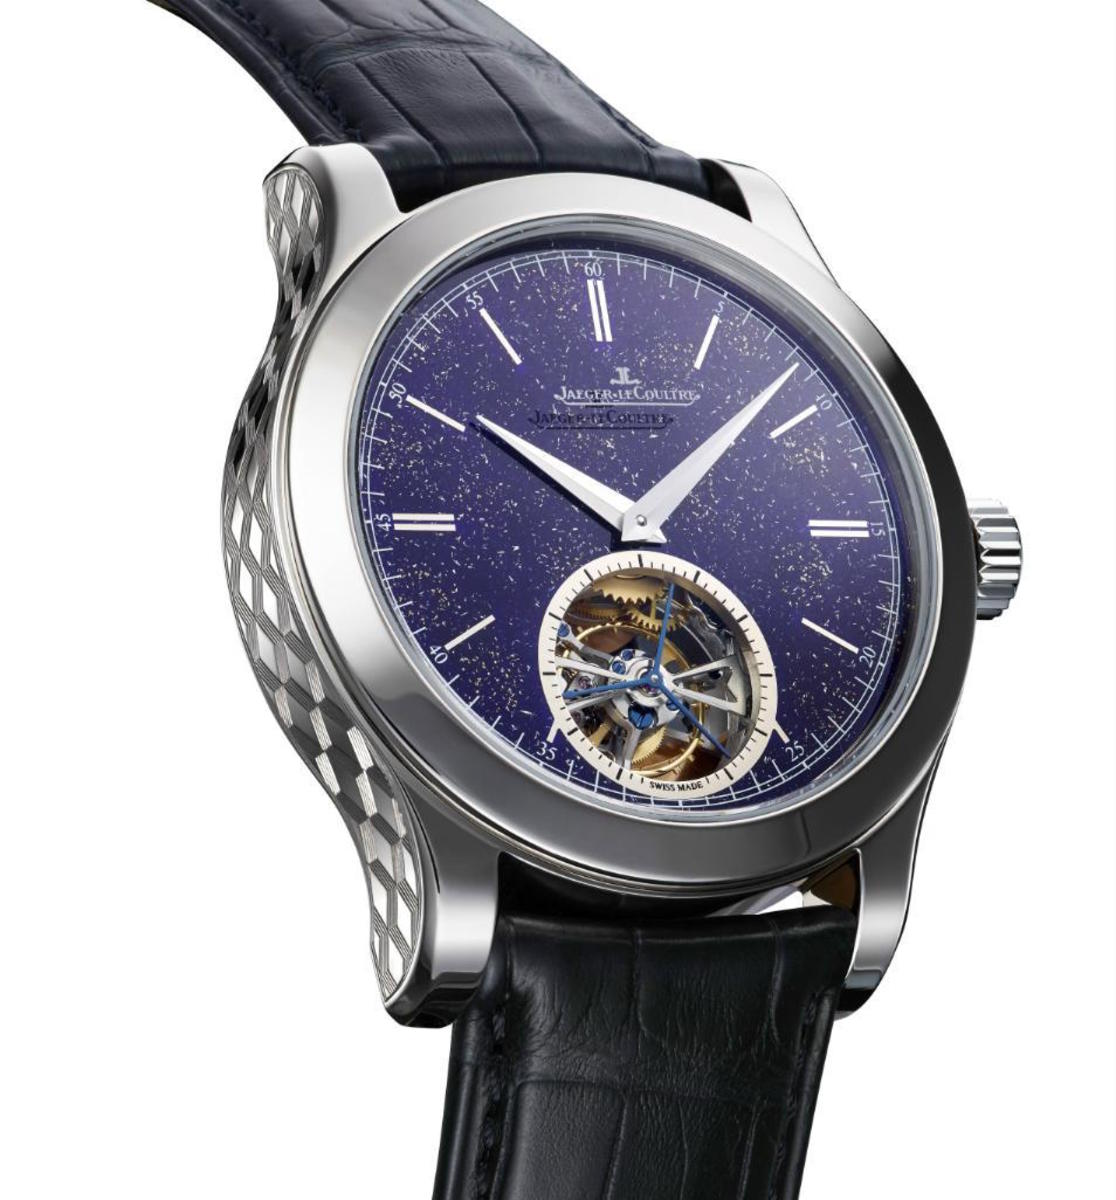 Jaeger-LeCoultre puts a starlit sky on your wrist